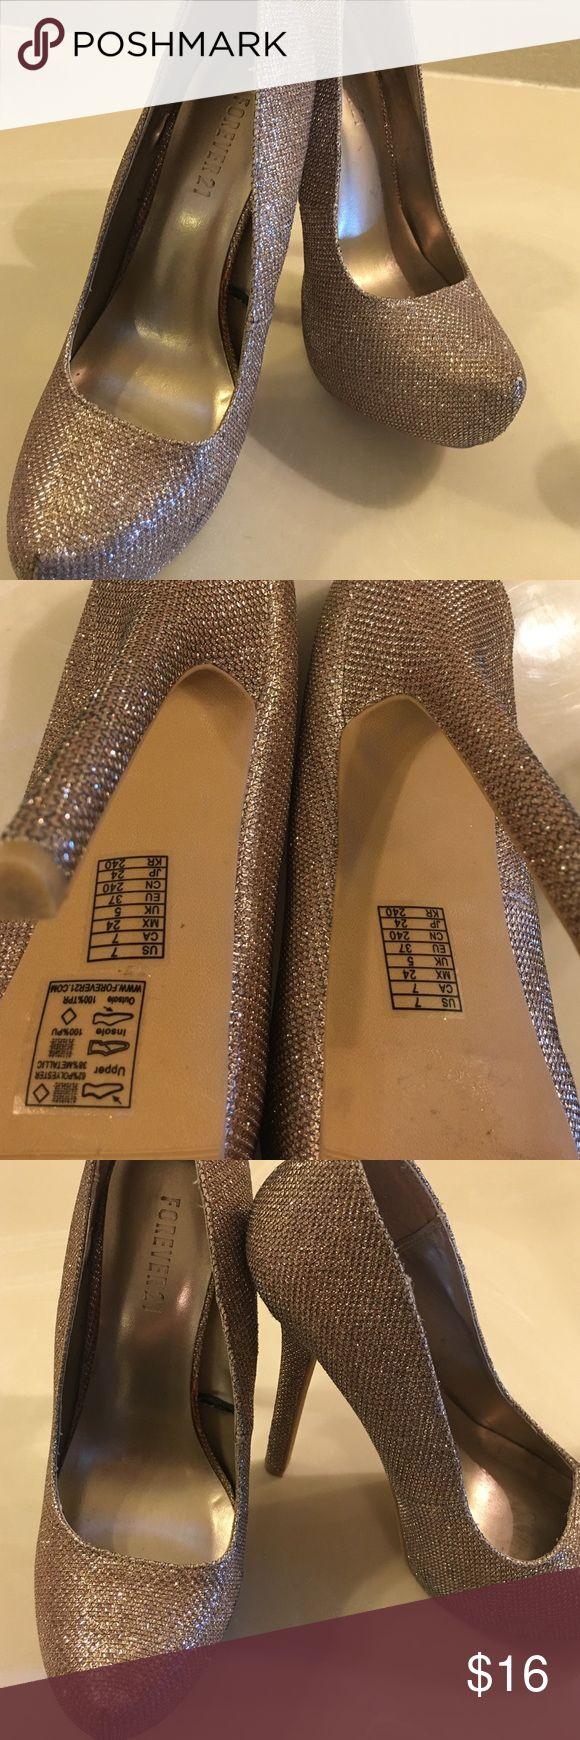 💕💕 gorgeous gold sparkly heals ! 💗 these are so much prettier in person! Good shape size 7 Shoes Heels